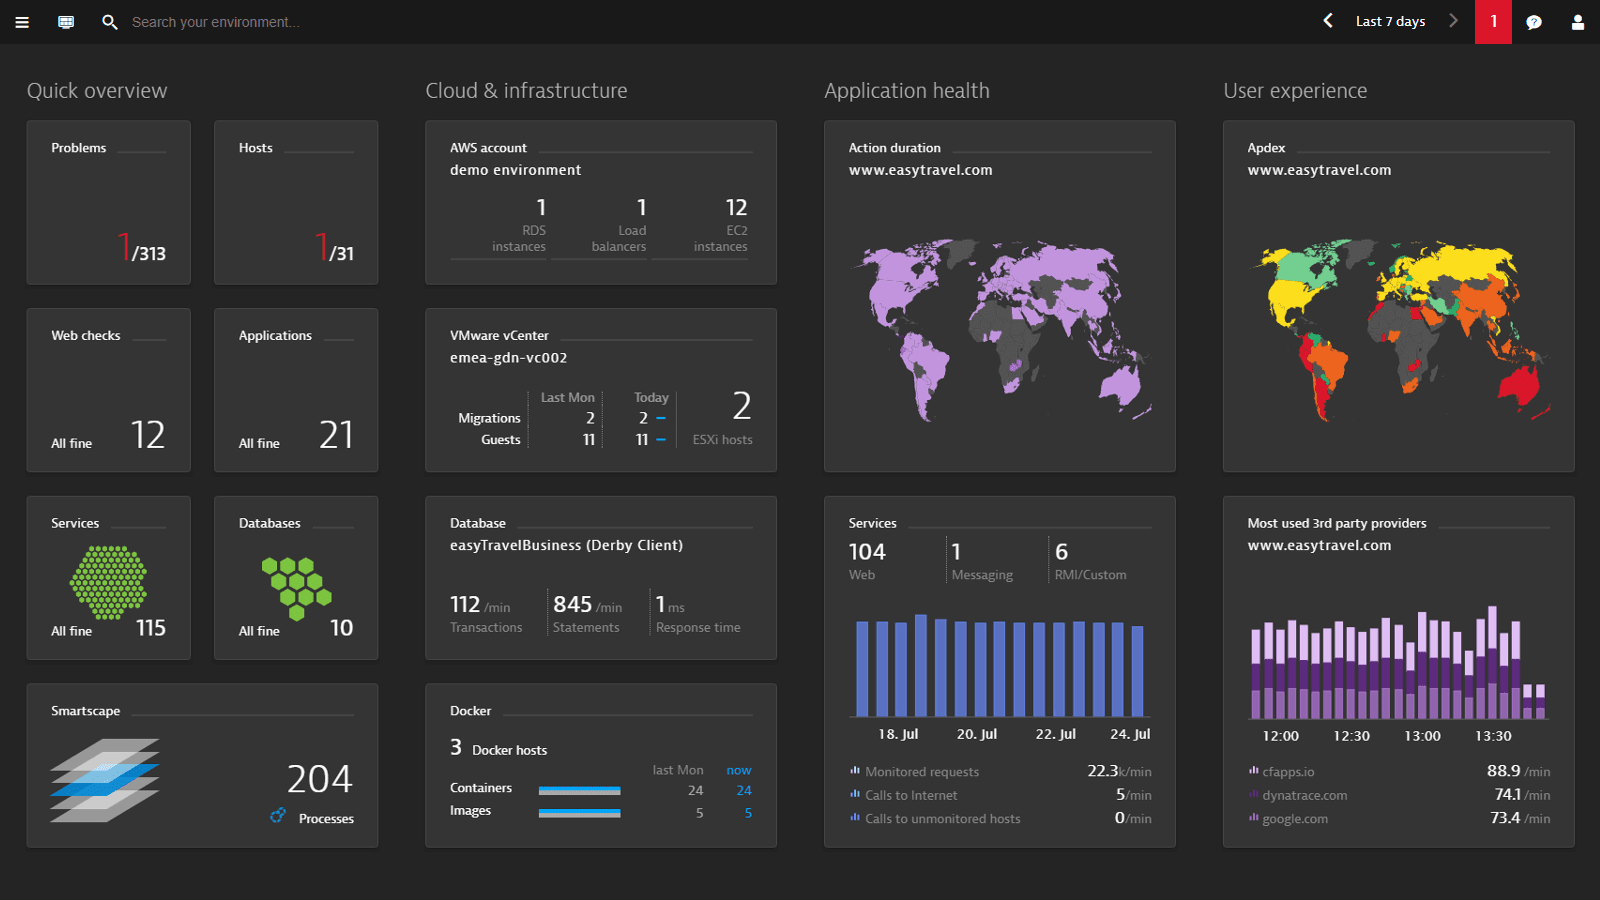 Dynatrace is an all-in-one tool to manage user experience, application performance, cloud components, 3rd party monitoring, network metrics and log analytics.